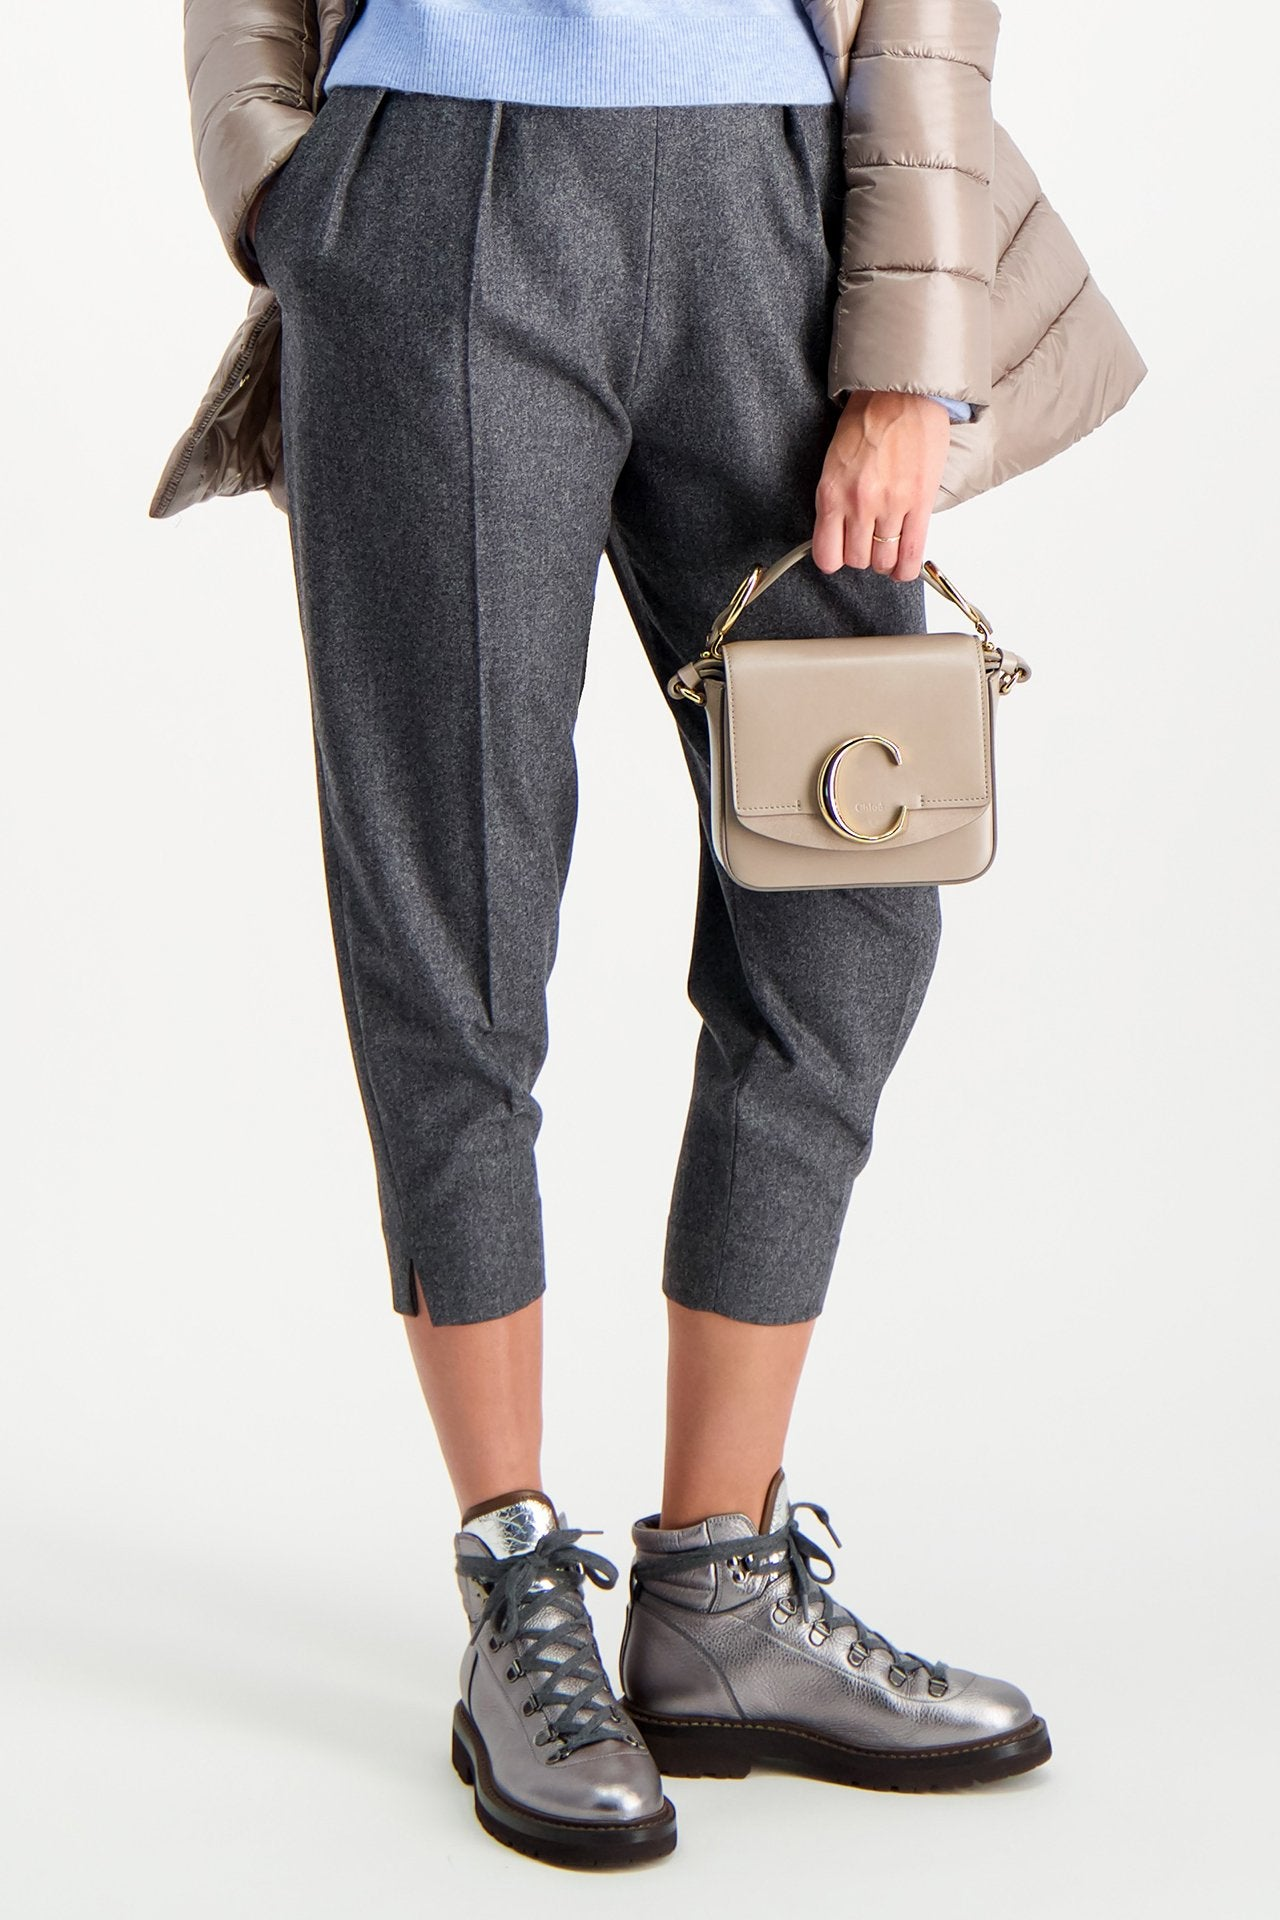 Model Image of Chloé C Mini Bag Motty Grey